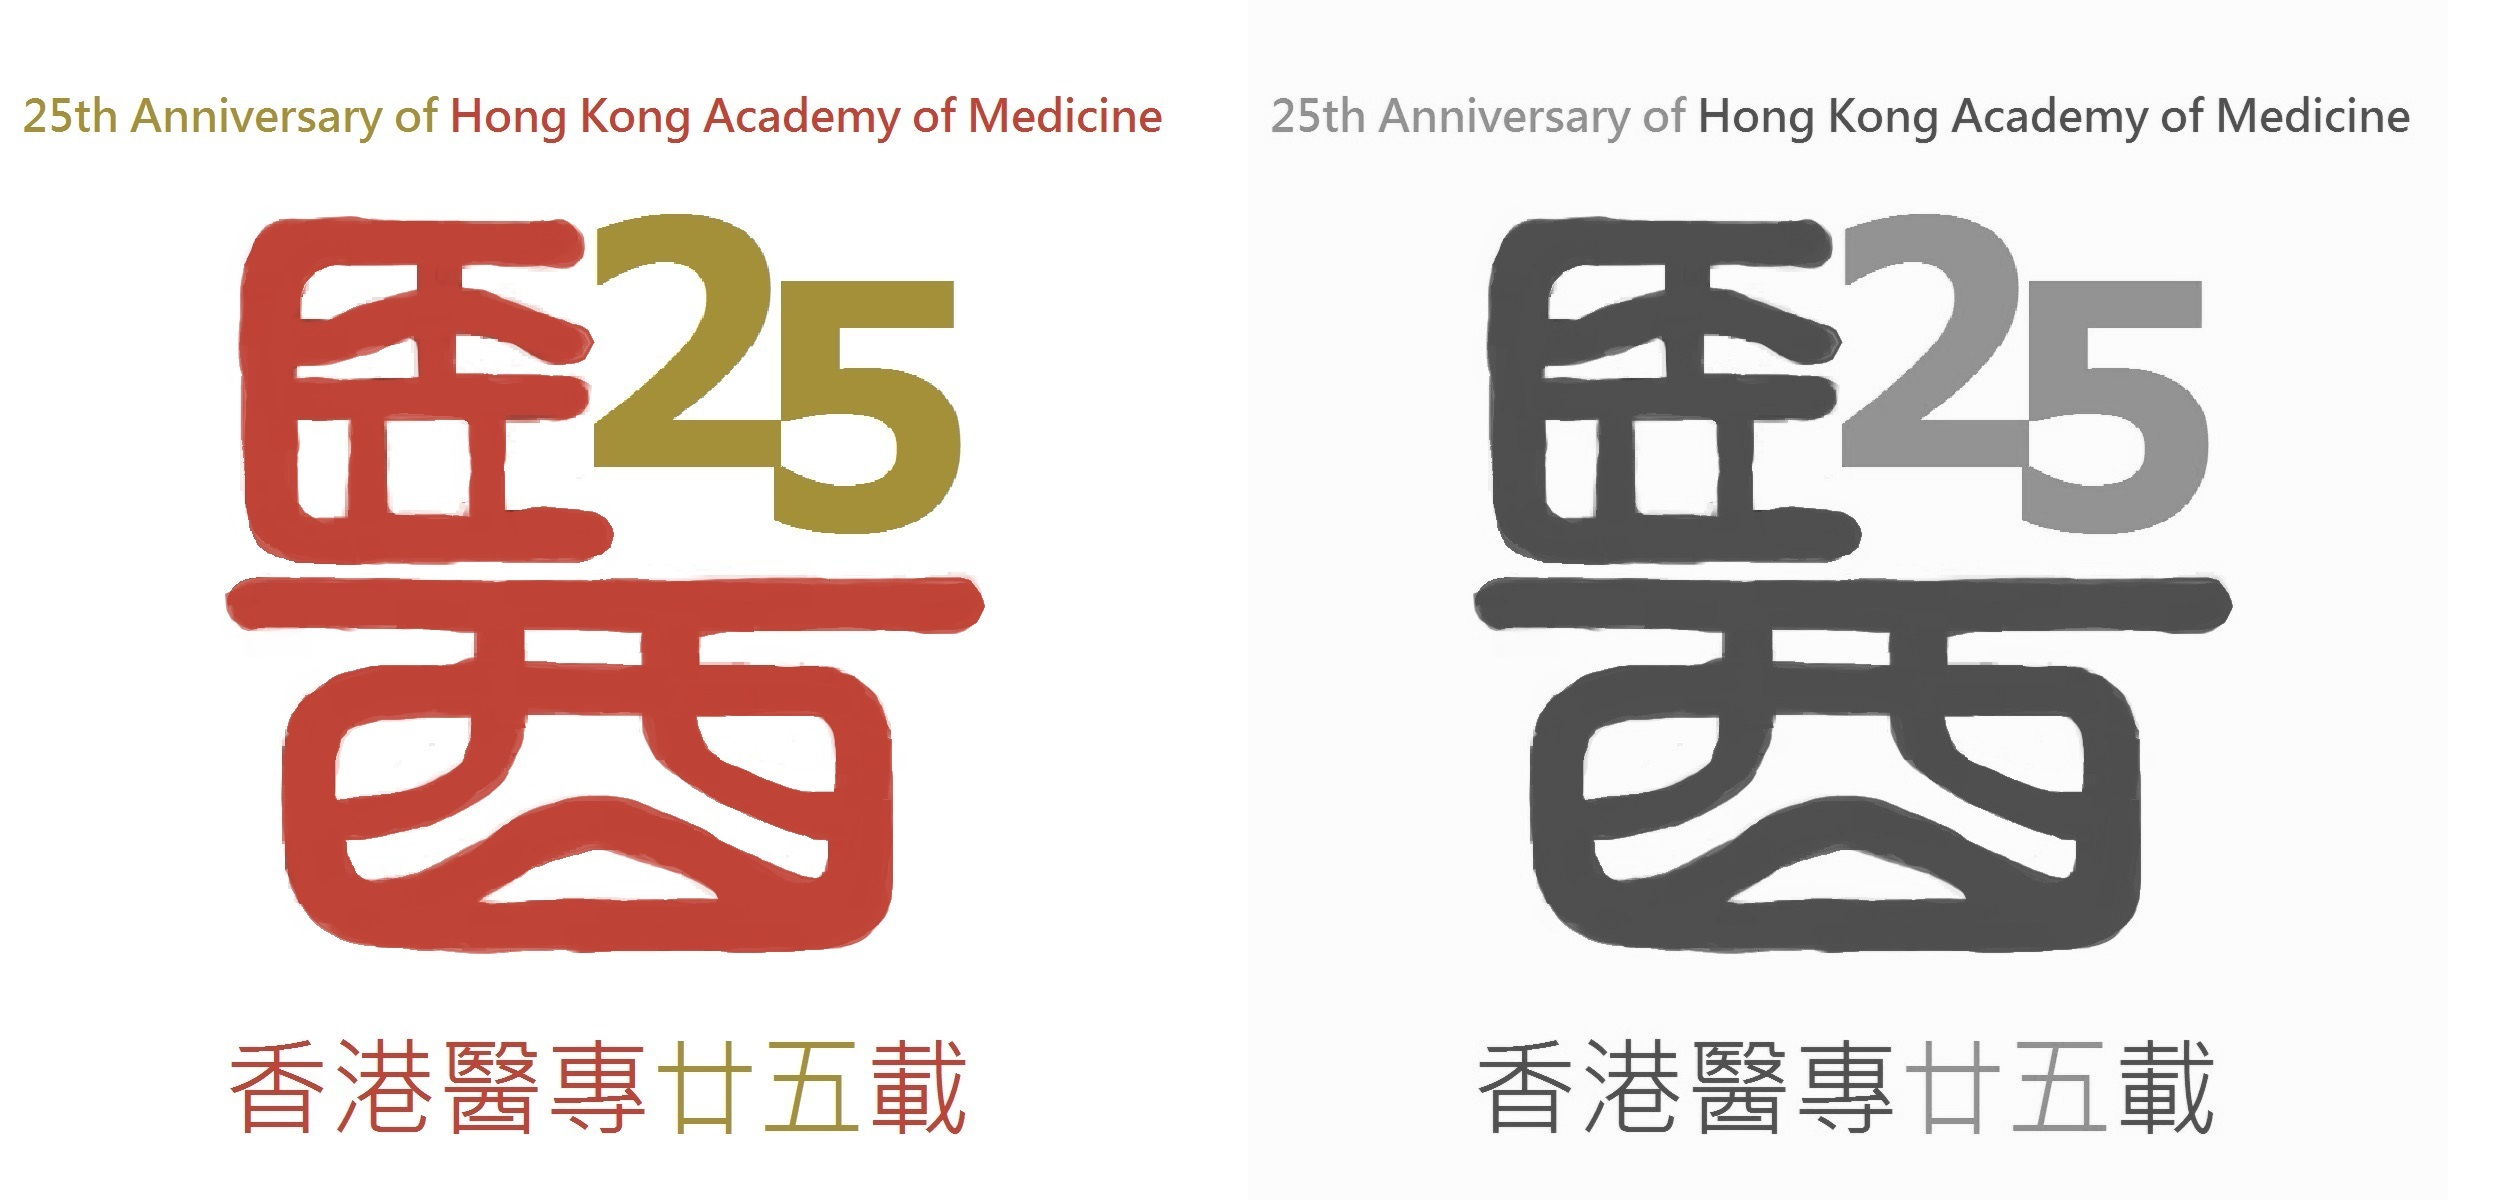 Vote for the Best Design of the Academy's 25th Anniversary Logo